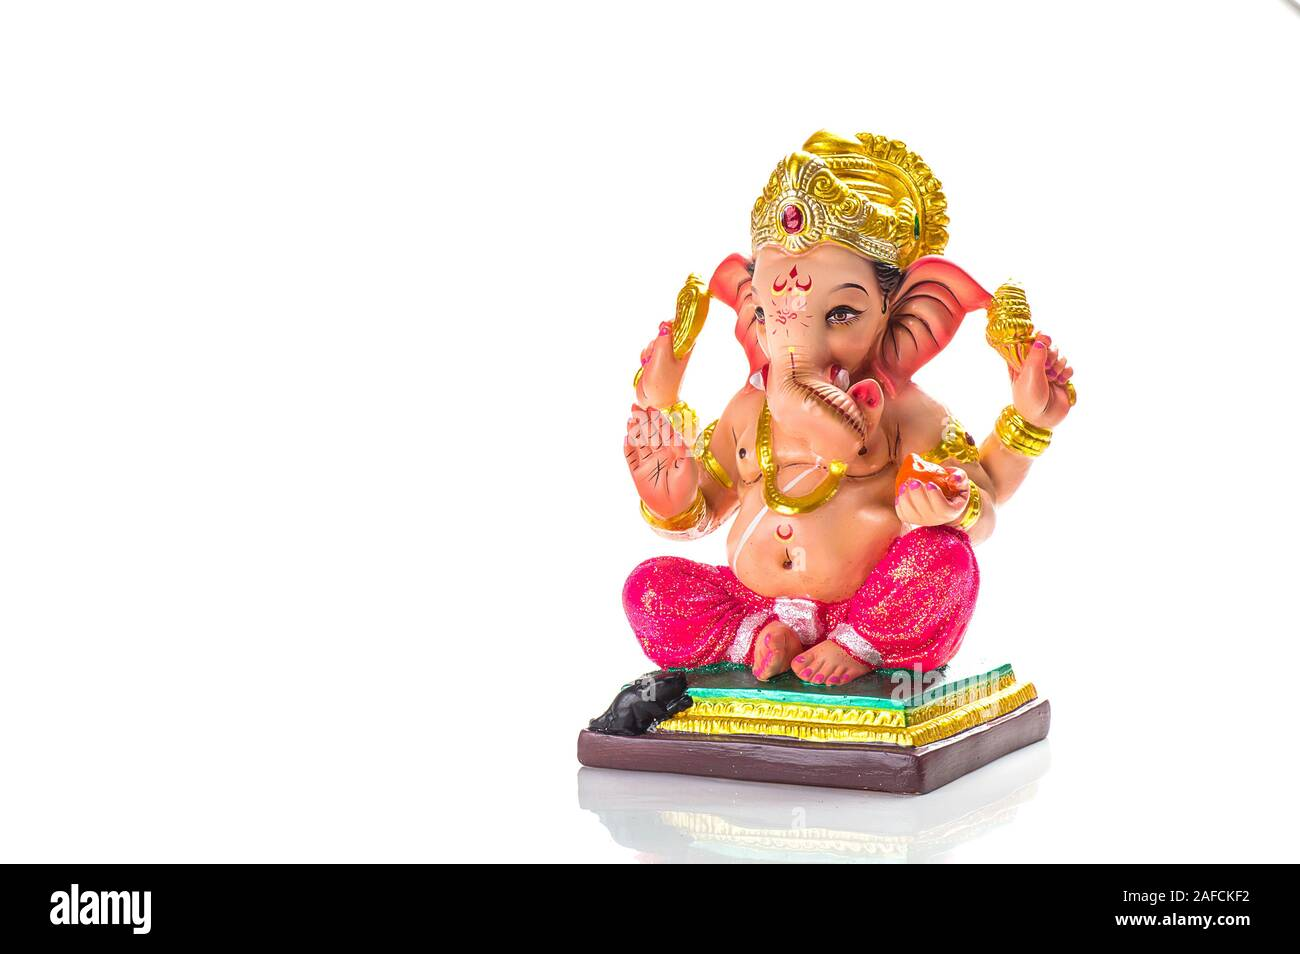 Ganesha Idol On White Background High Resolution Stock Photography